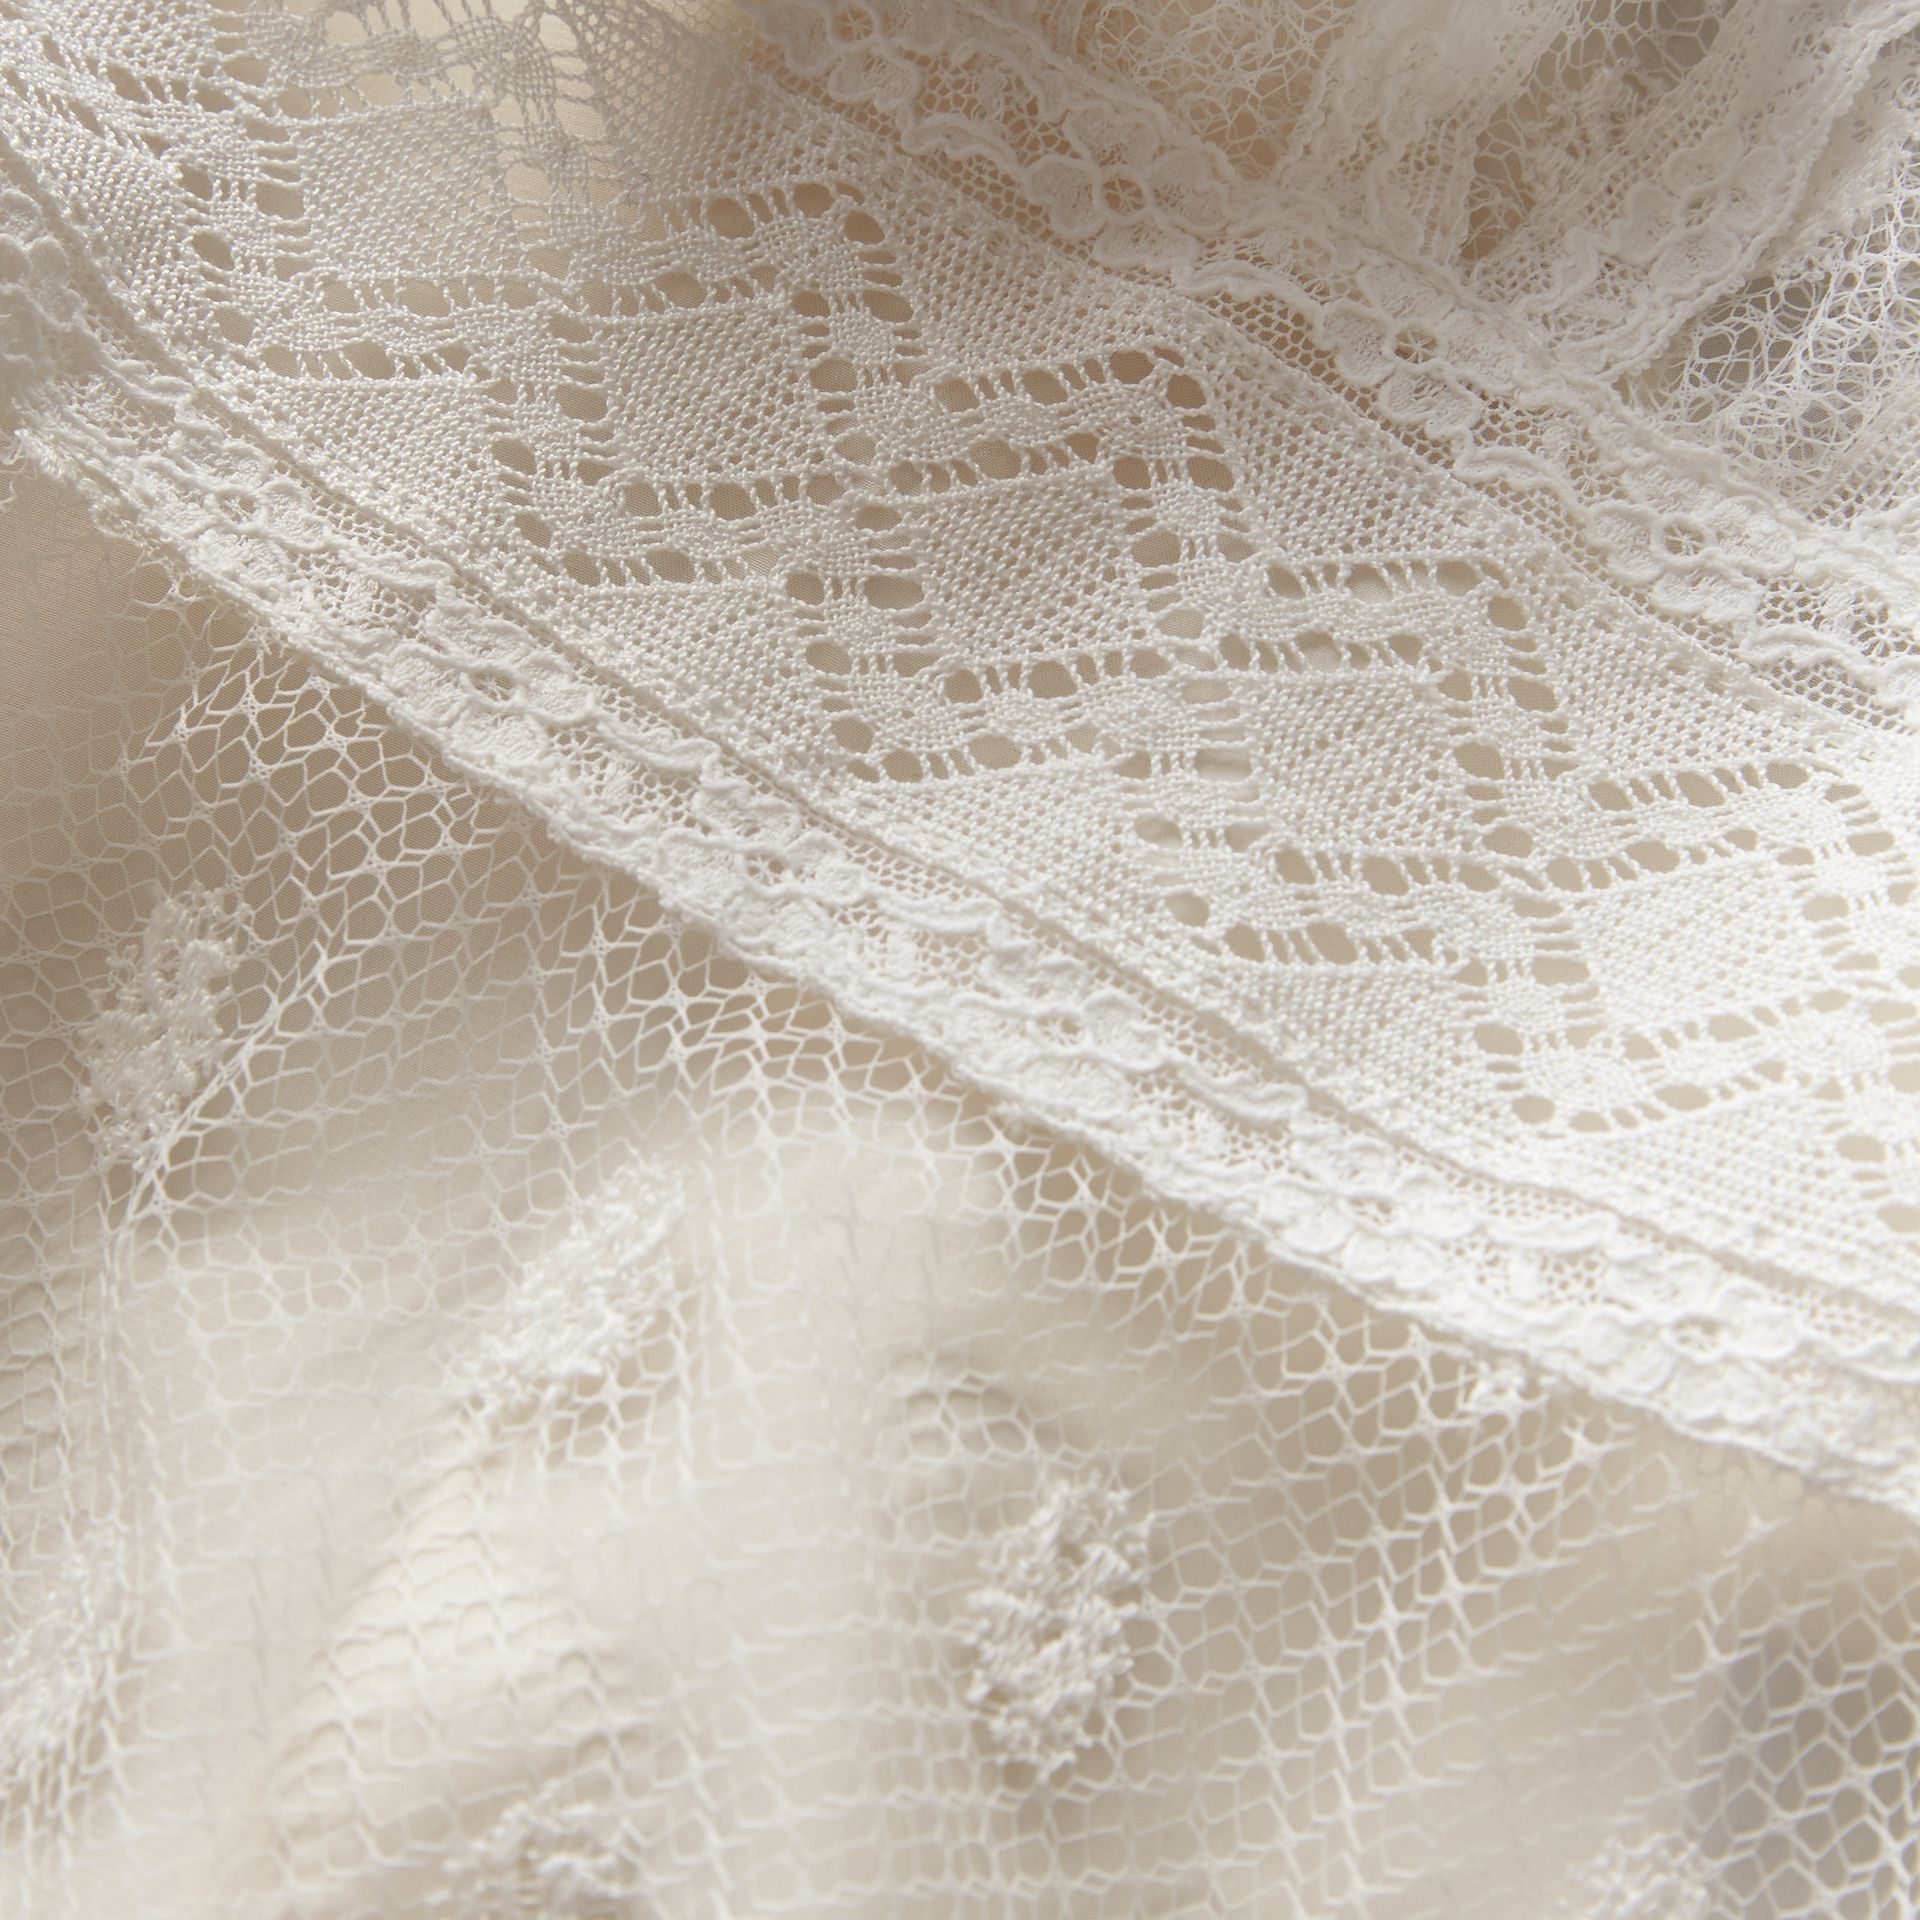 Embroidered Tulle Panel Dress in Off White - Women | Burberry - gallery image 1